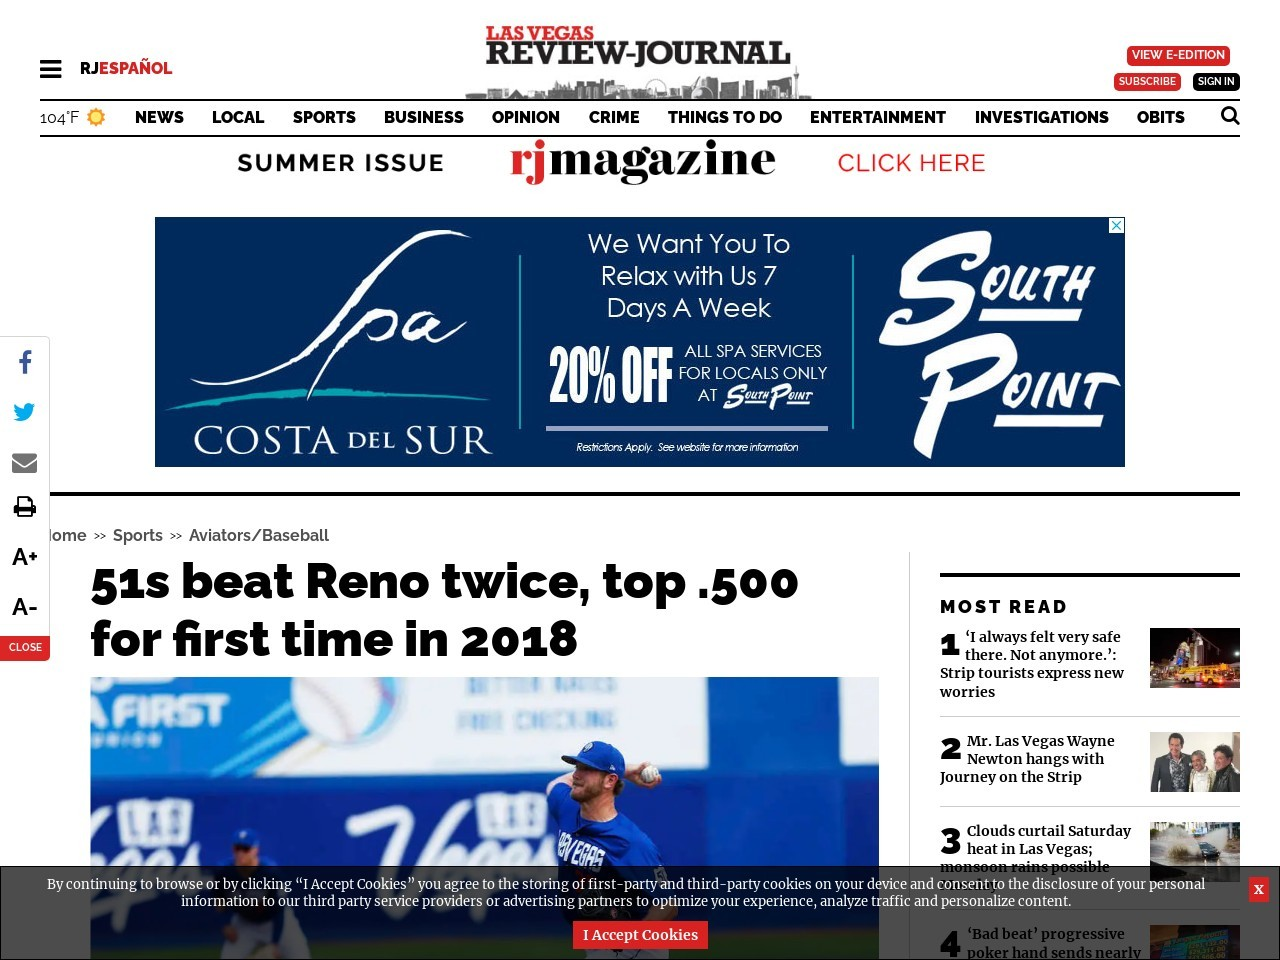 51s beat Reno twice, top .500 for first time in 2018